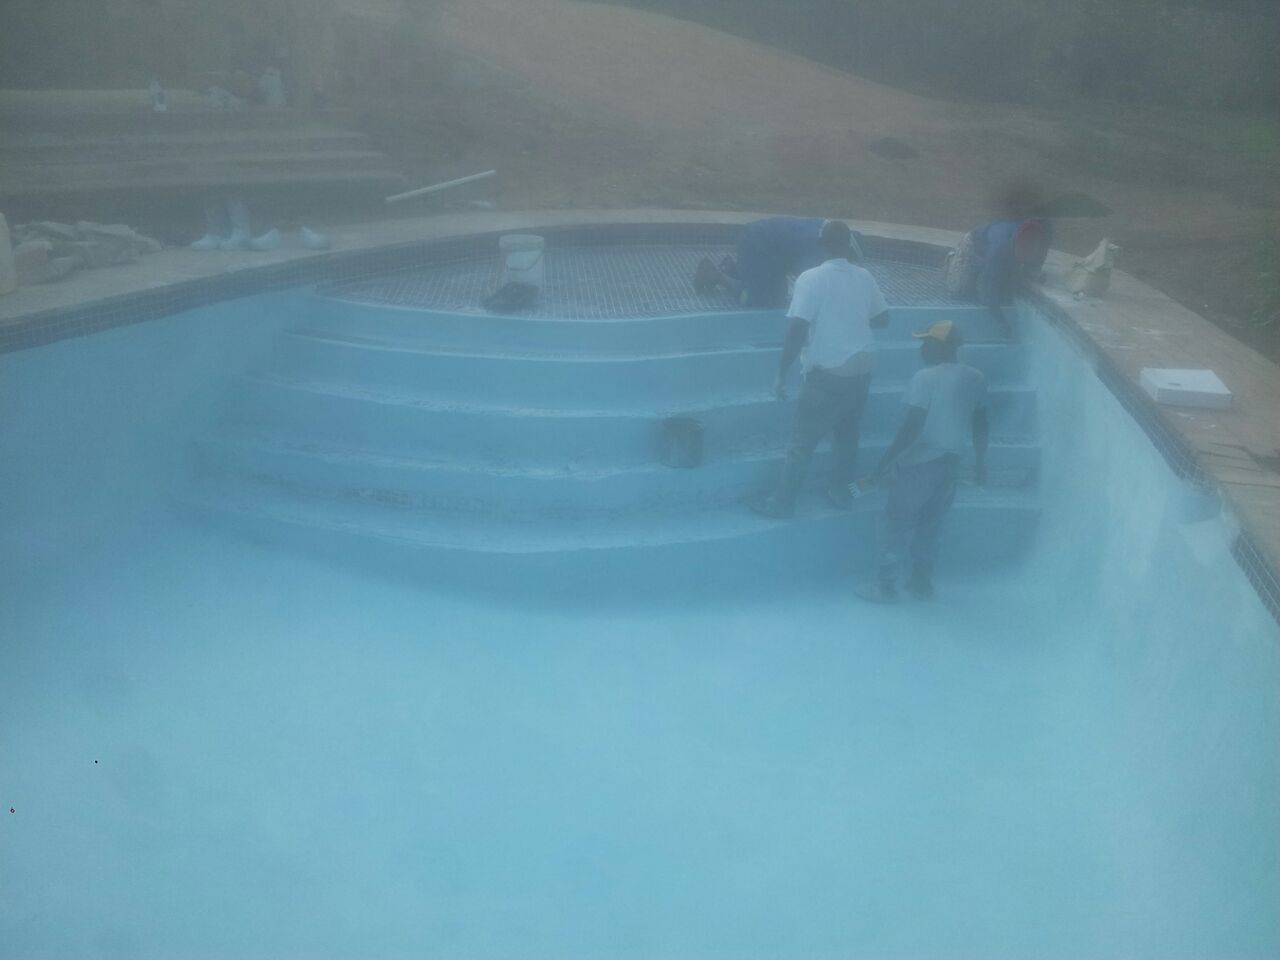 Pool Pump Installations, Pool Constructions, Pool Repairs, Borehole installations, Water Pumps